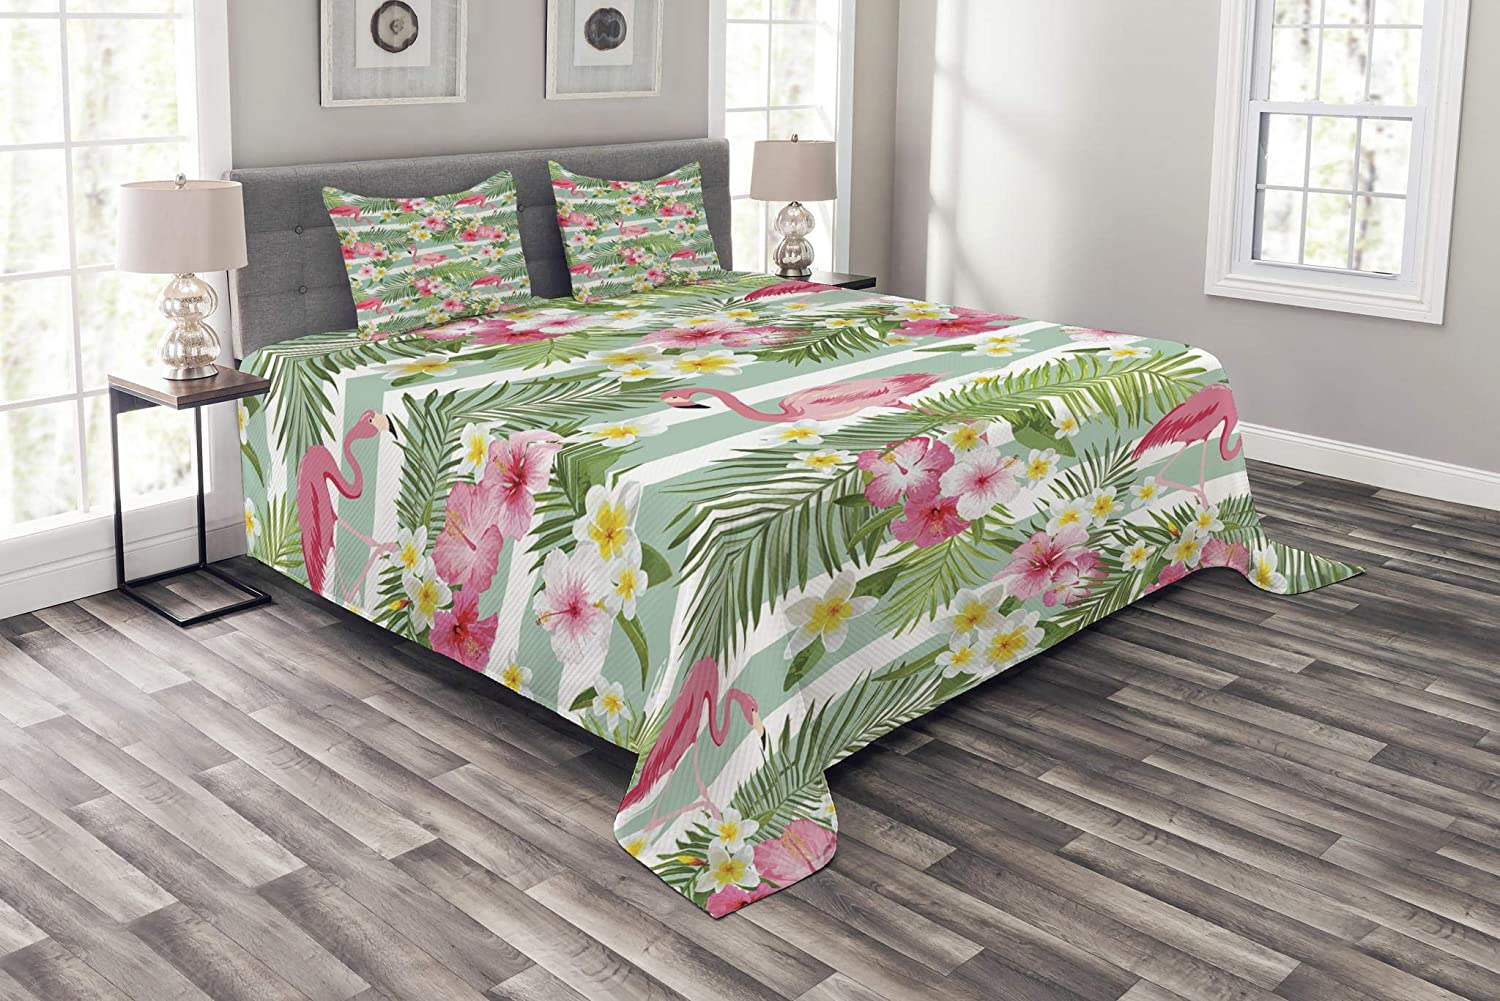 Ambesonne Flamingo Bedspread, Flamingos with Exotic Hawaiian Leaves Flowers on Striped Vintage Background, Decorative Quilted 3 Piece Coverlet Set with 2 Pillow Shams, Queen Size, Green Pink